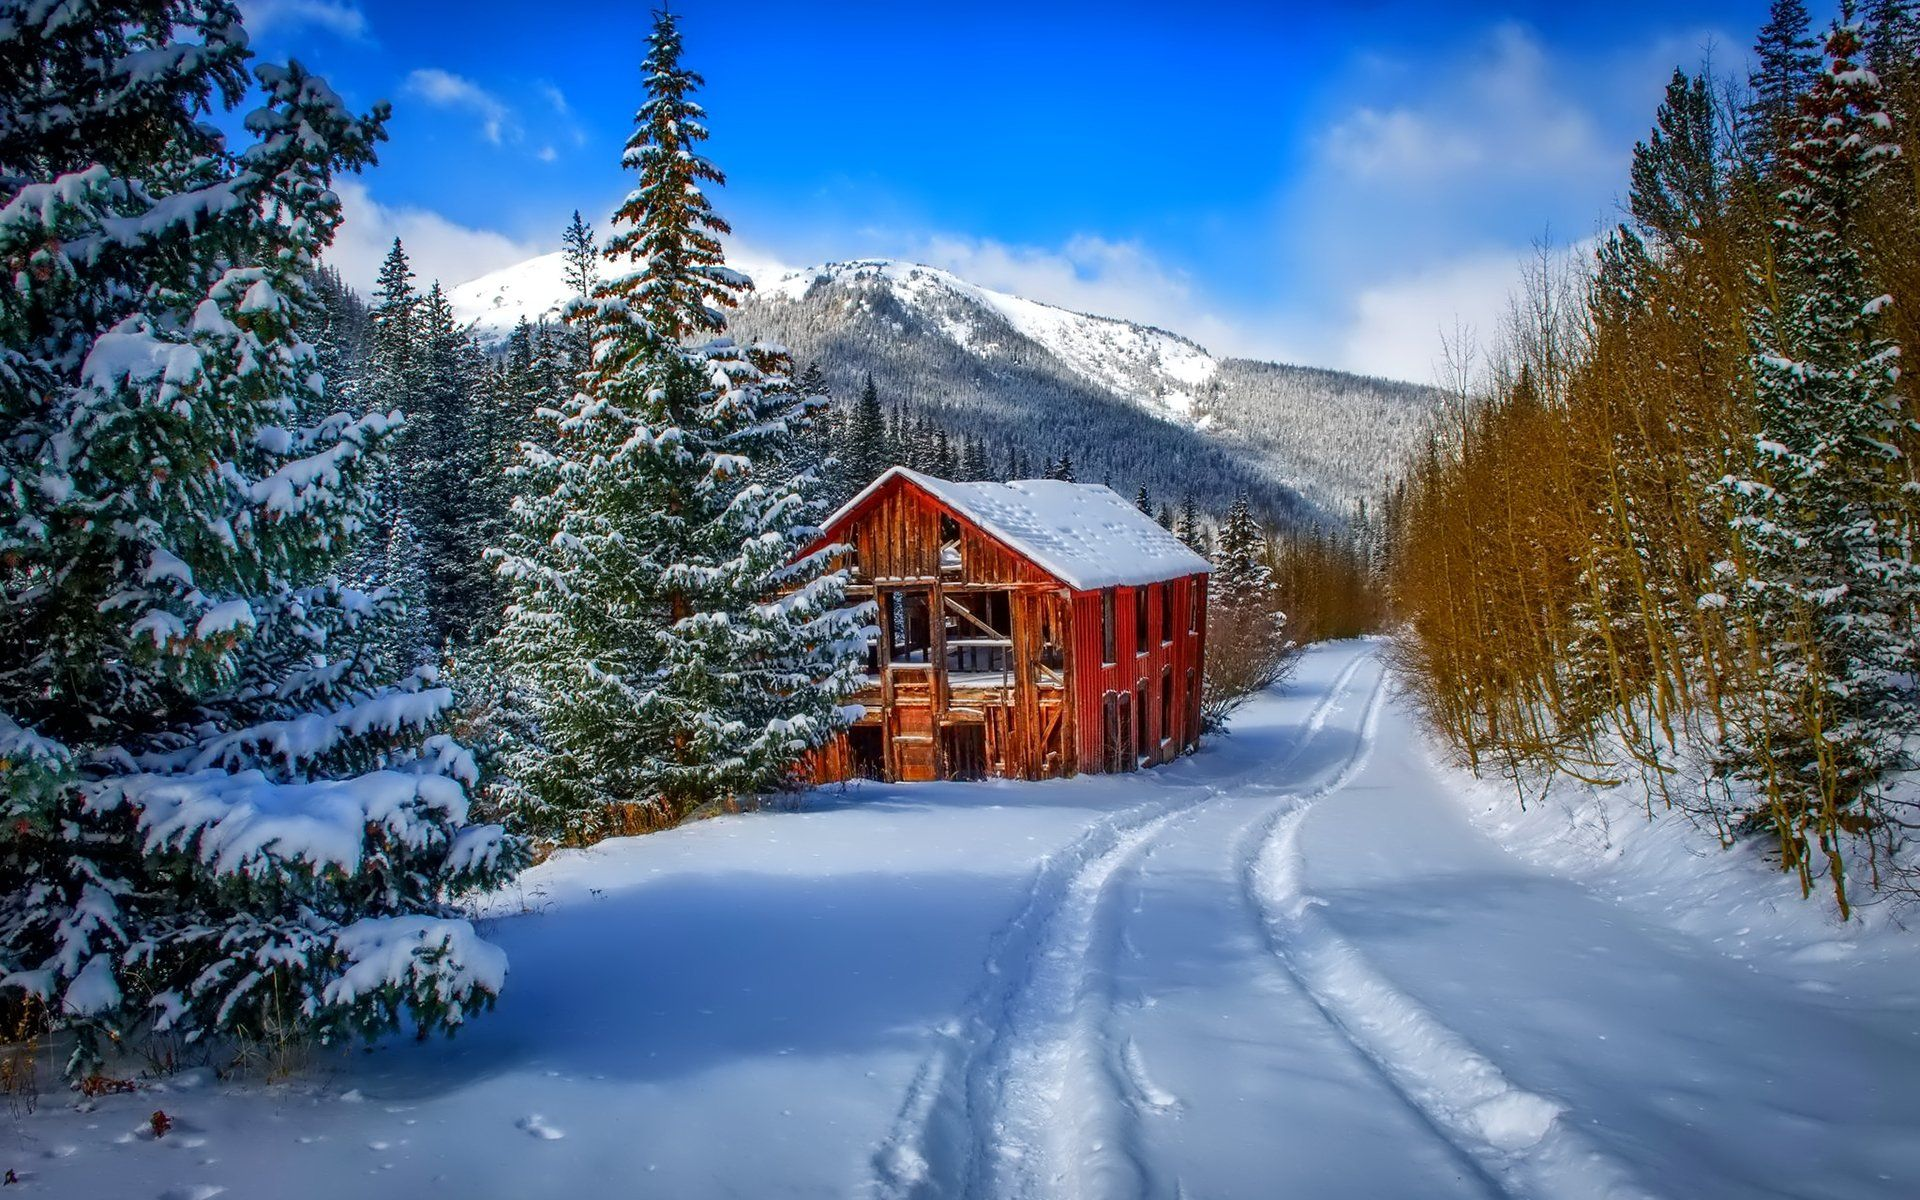 70 Cabin Mountain Winter iPhone Wallpapers   Download at WallpaperBro 1920x1200